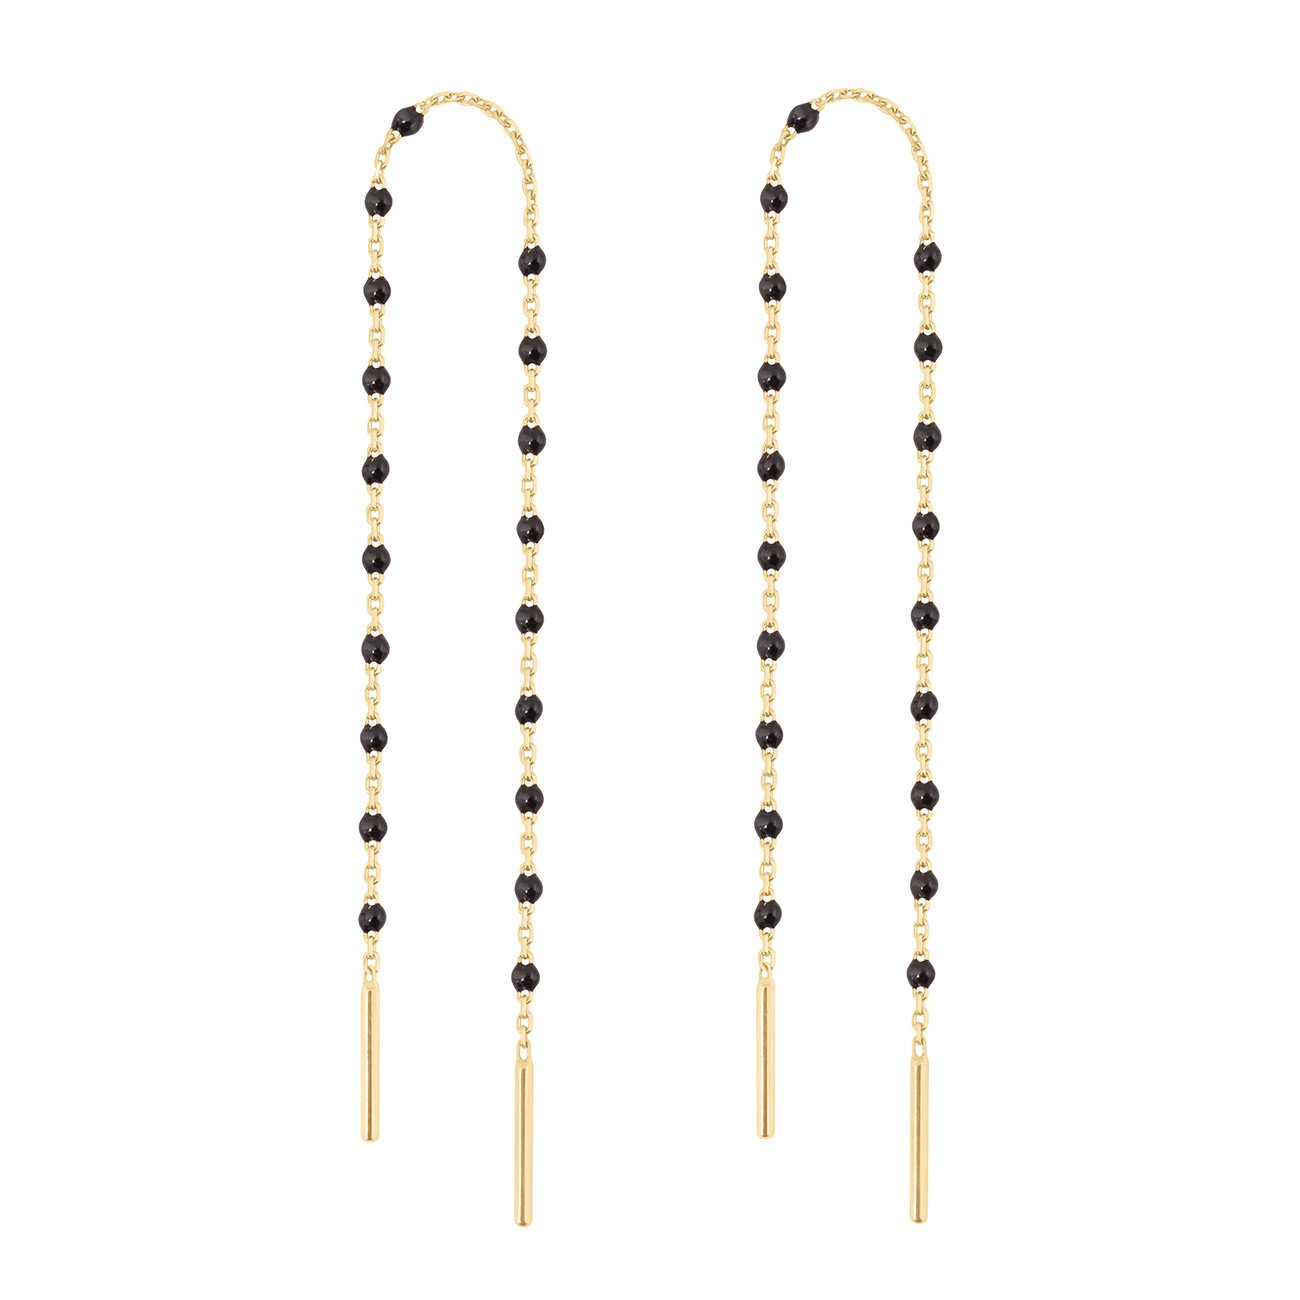 Gigi Clozeau - Mini Gigi Black earrings, Yellow Gold